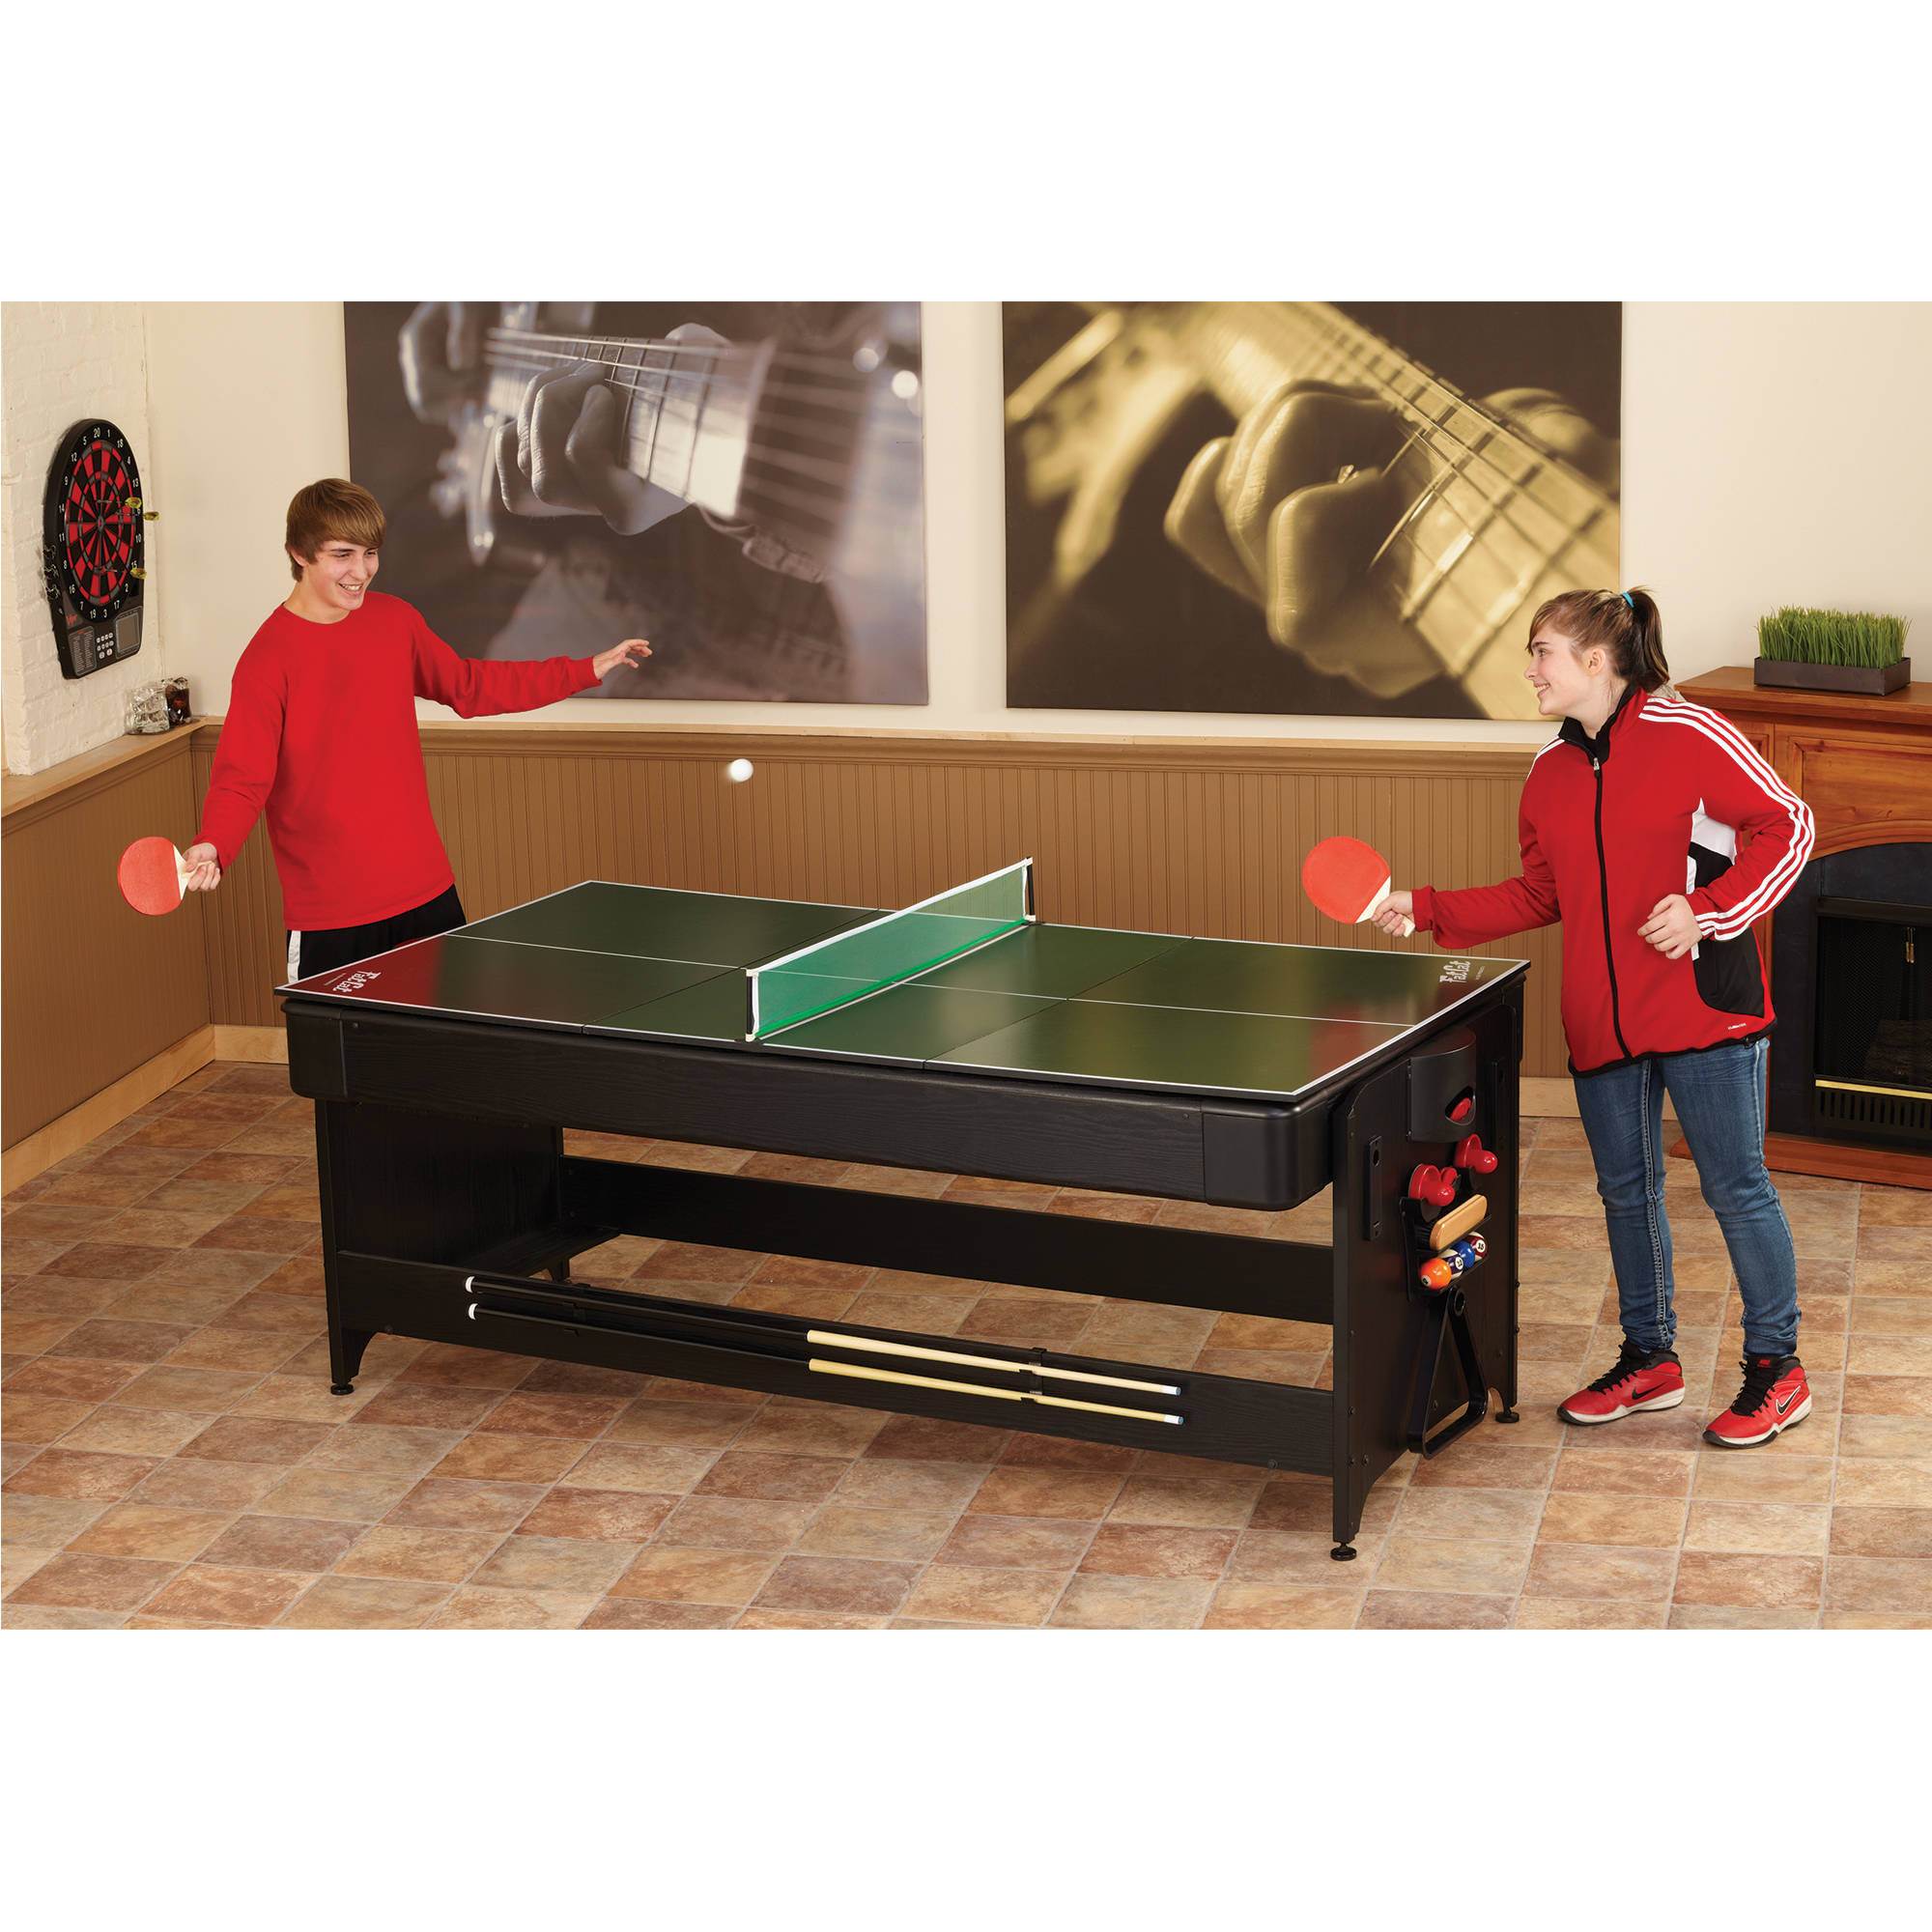 Inch In Game Table Images Products Md Sports Your - 7 inch pool table